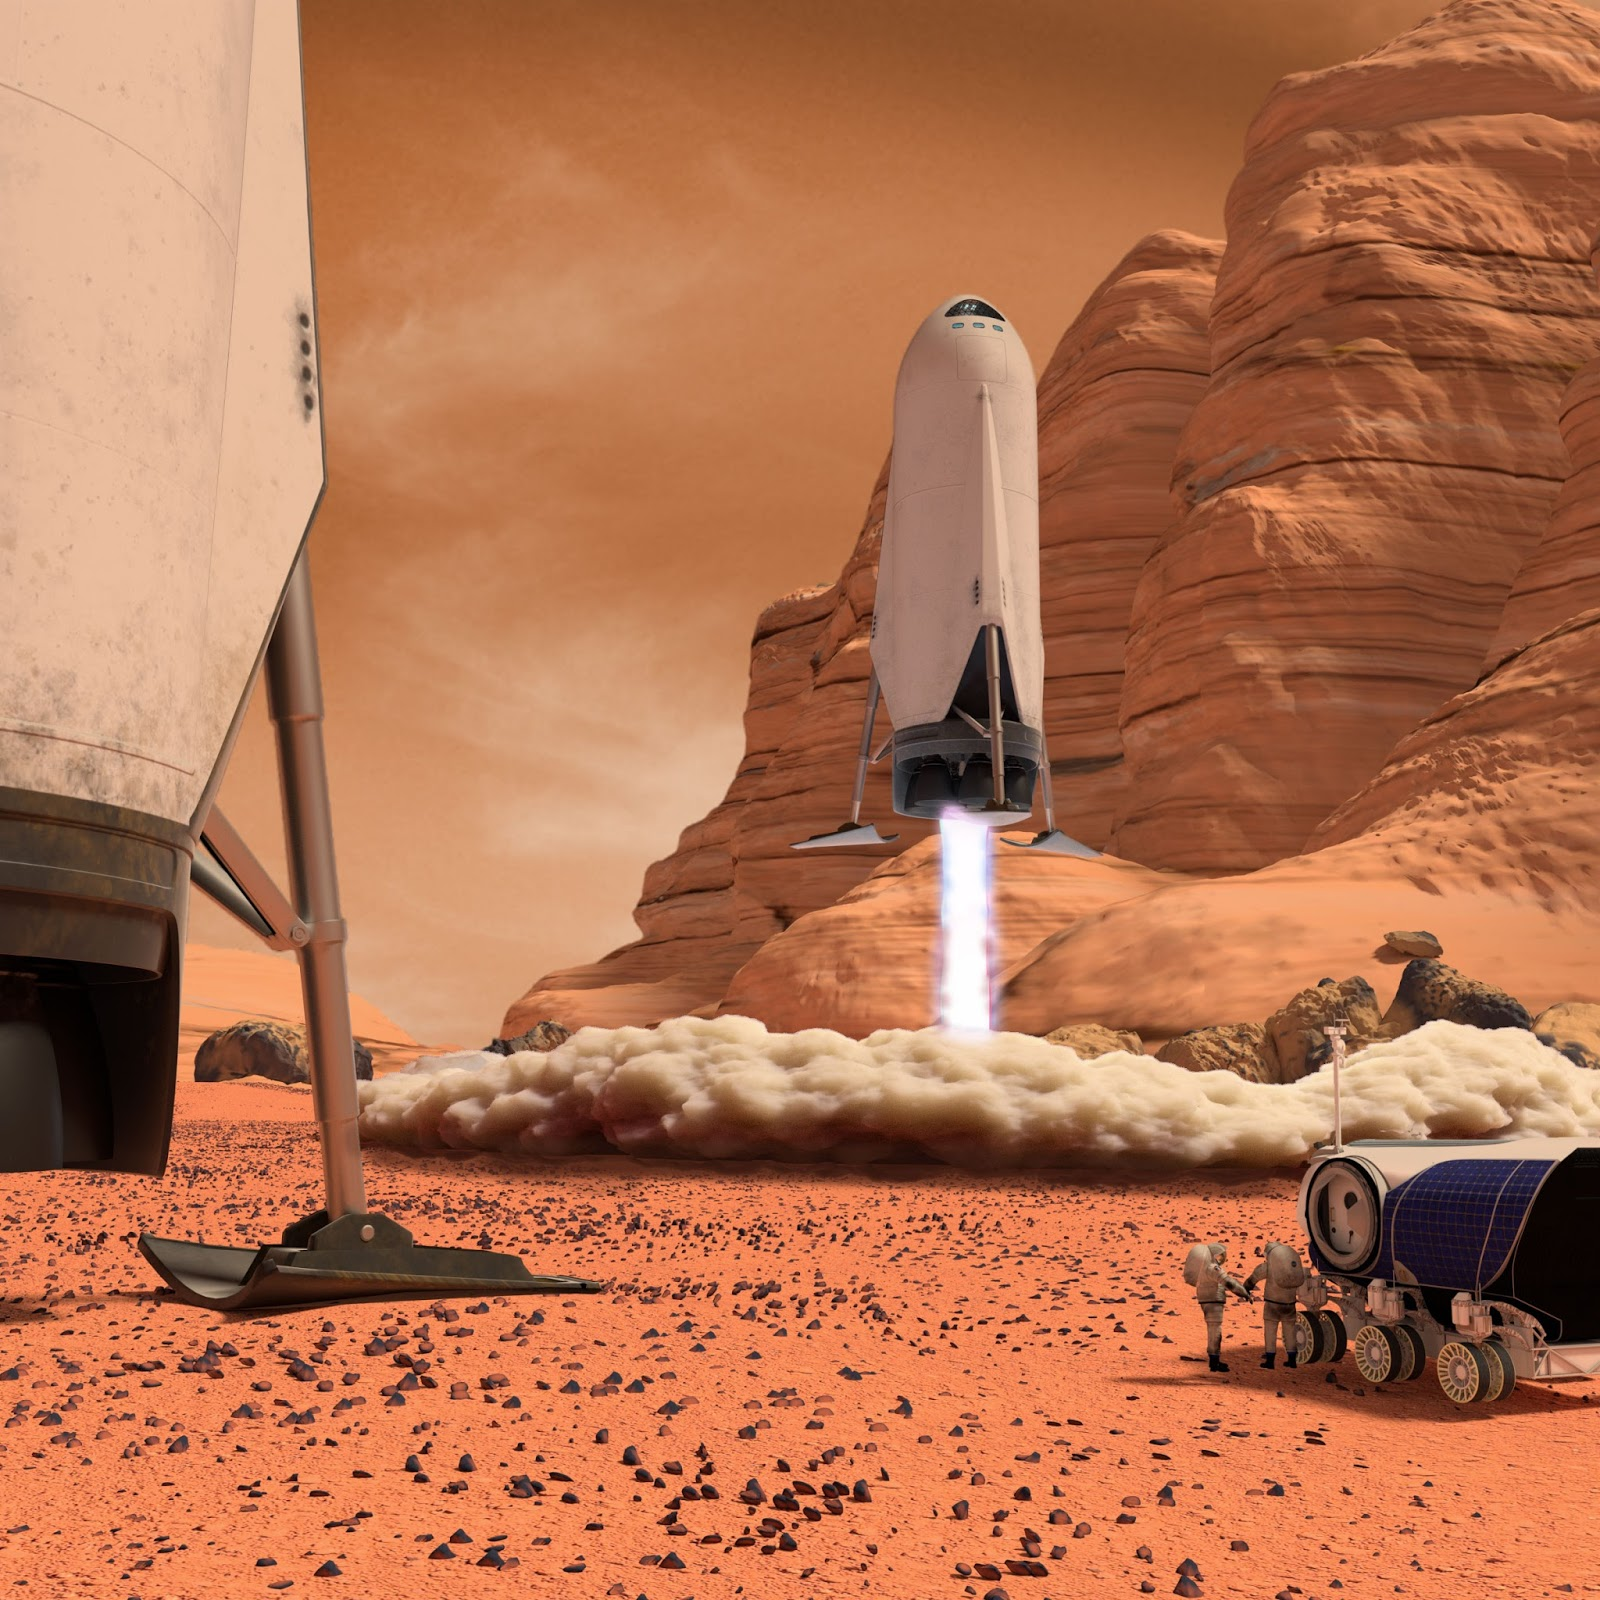 SpaceX downscaled ITS spaceship landing on Mars